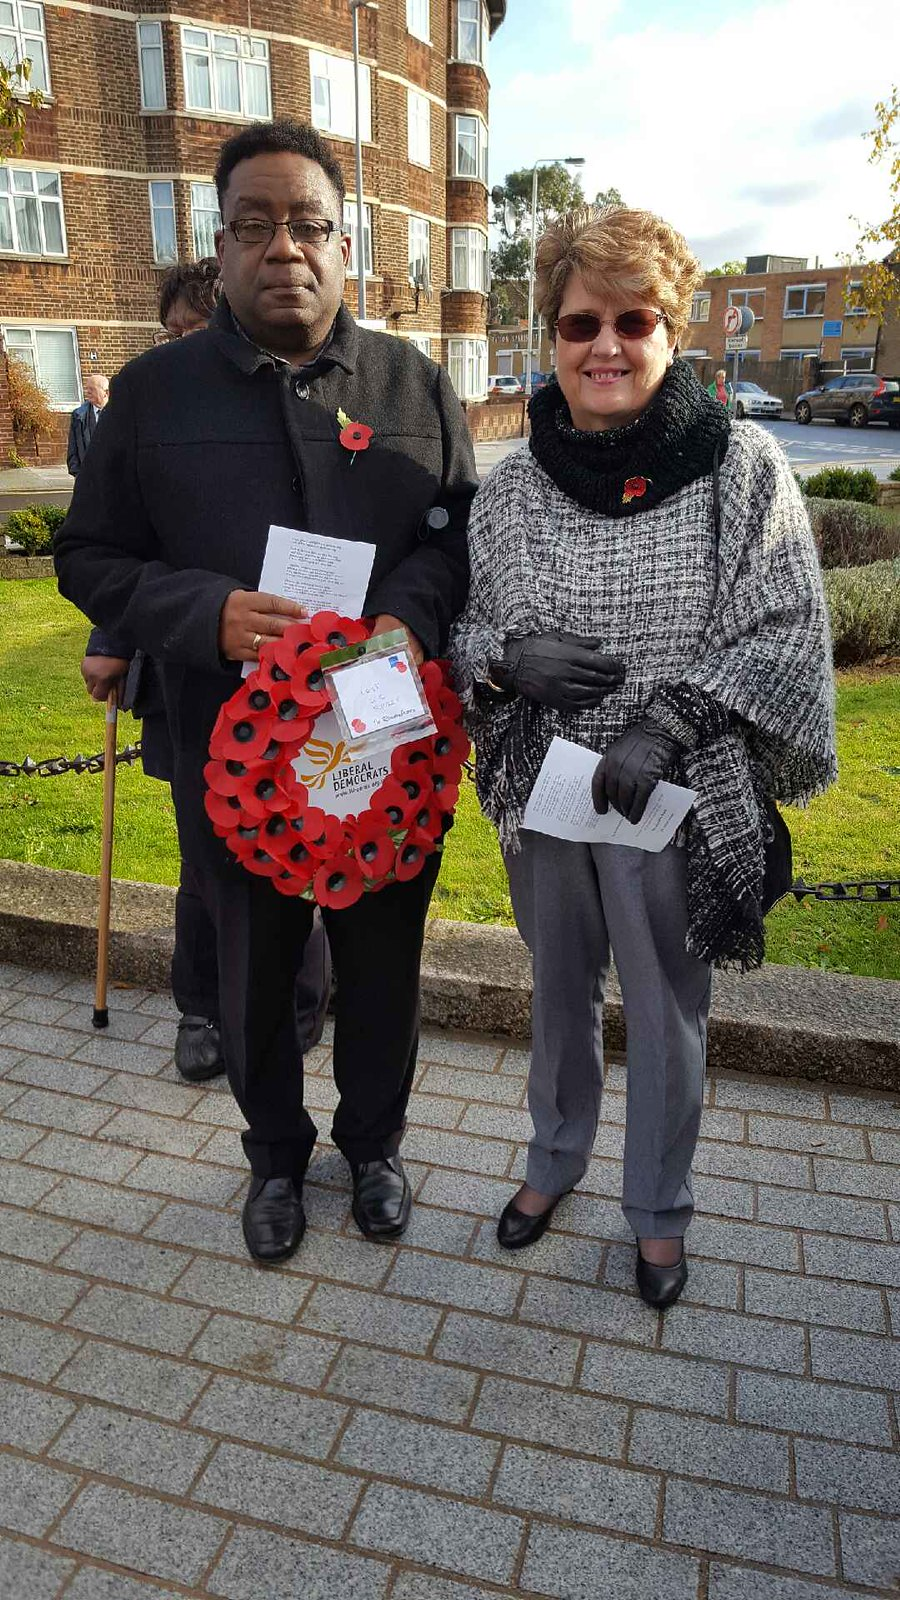 Cann Hall Liberal Democrat FOCUS Team members Liz Phillips and Rupert Alexander laid a wreath at the Harrow Green Memorial